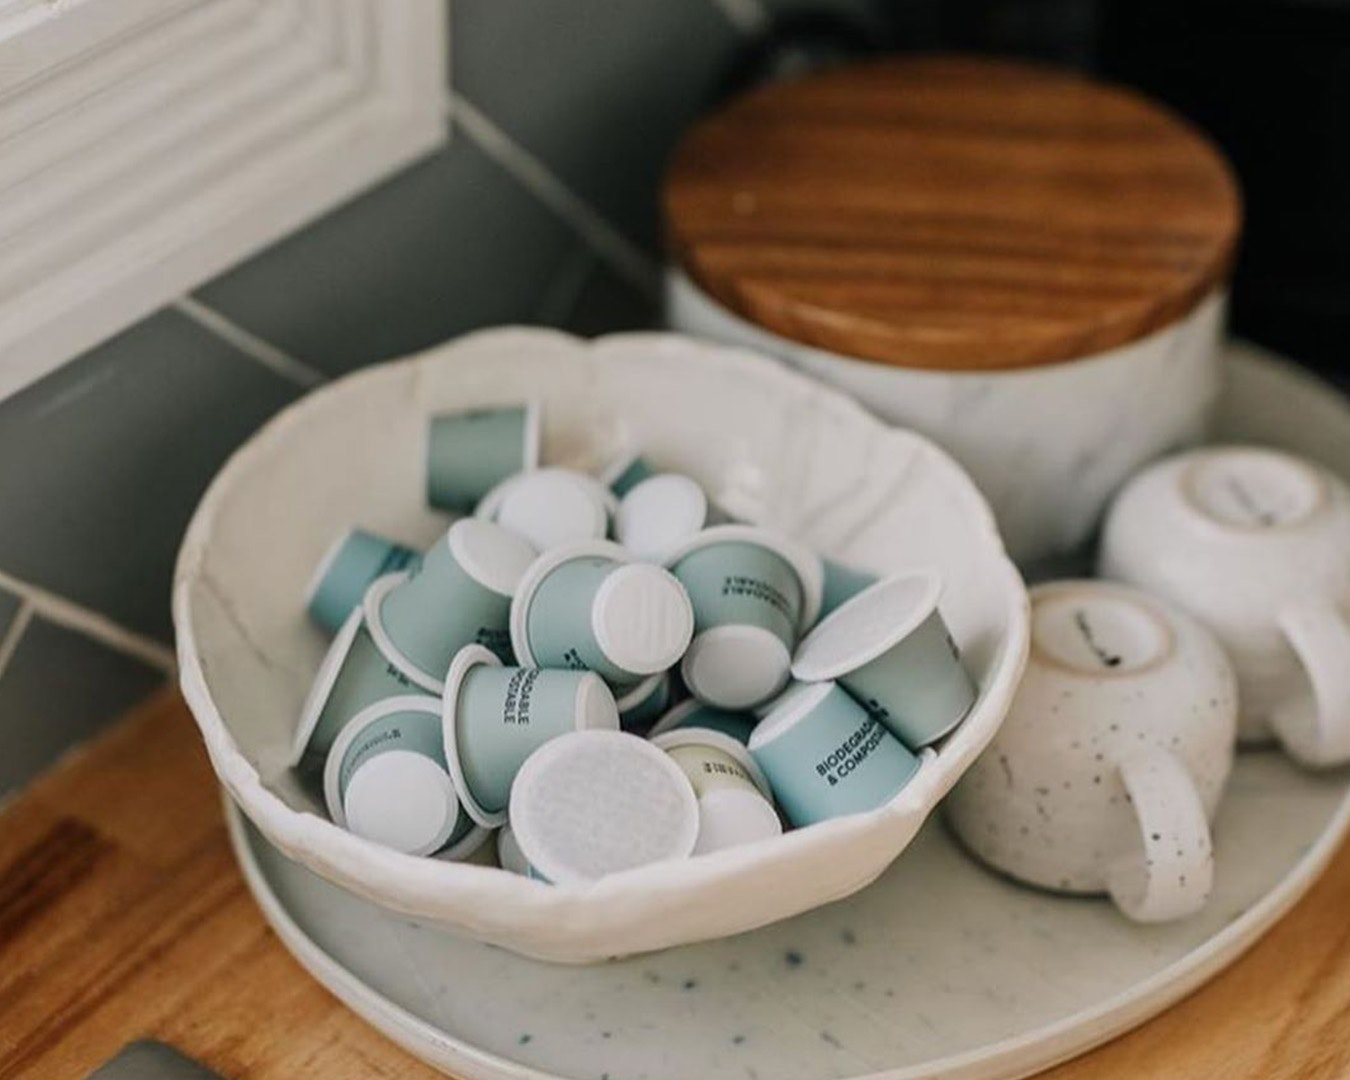 a bunch of coffee pods in a bowl on a kitchen counter.